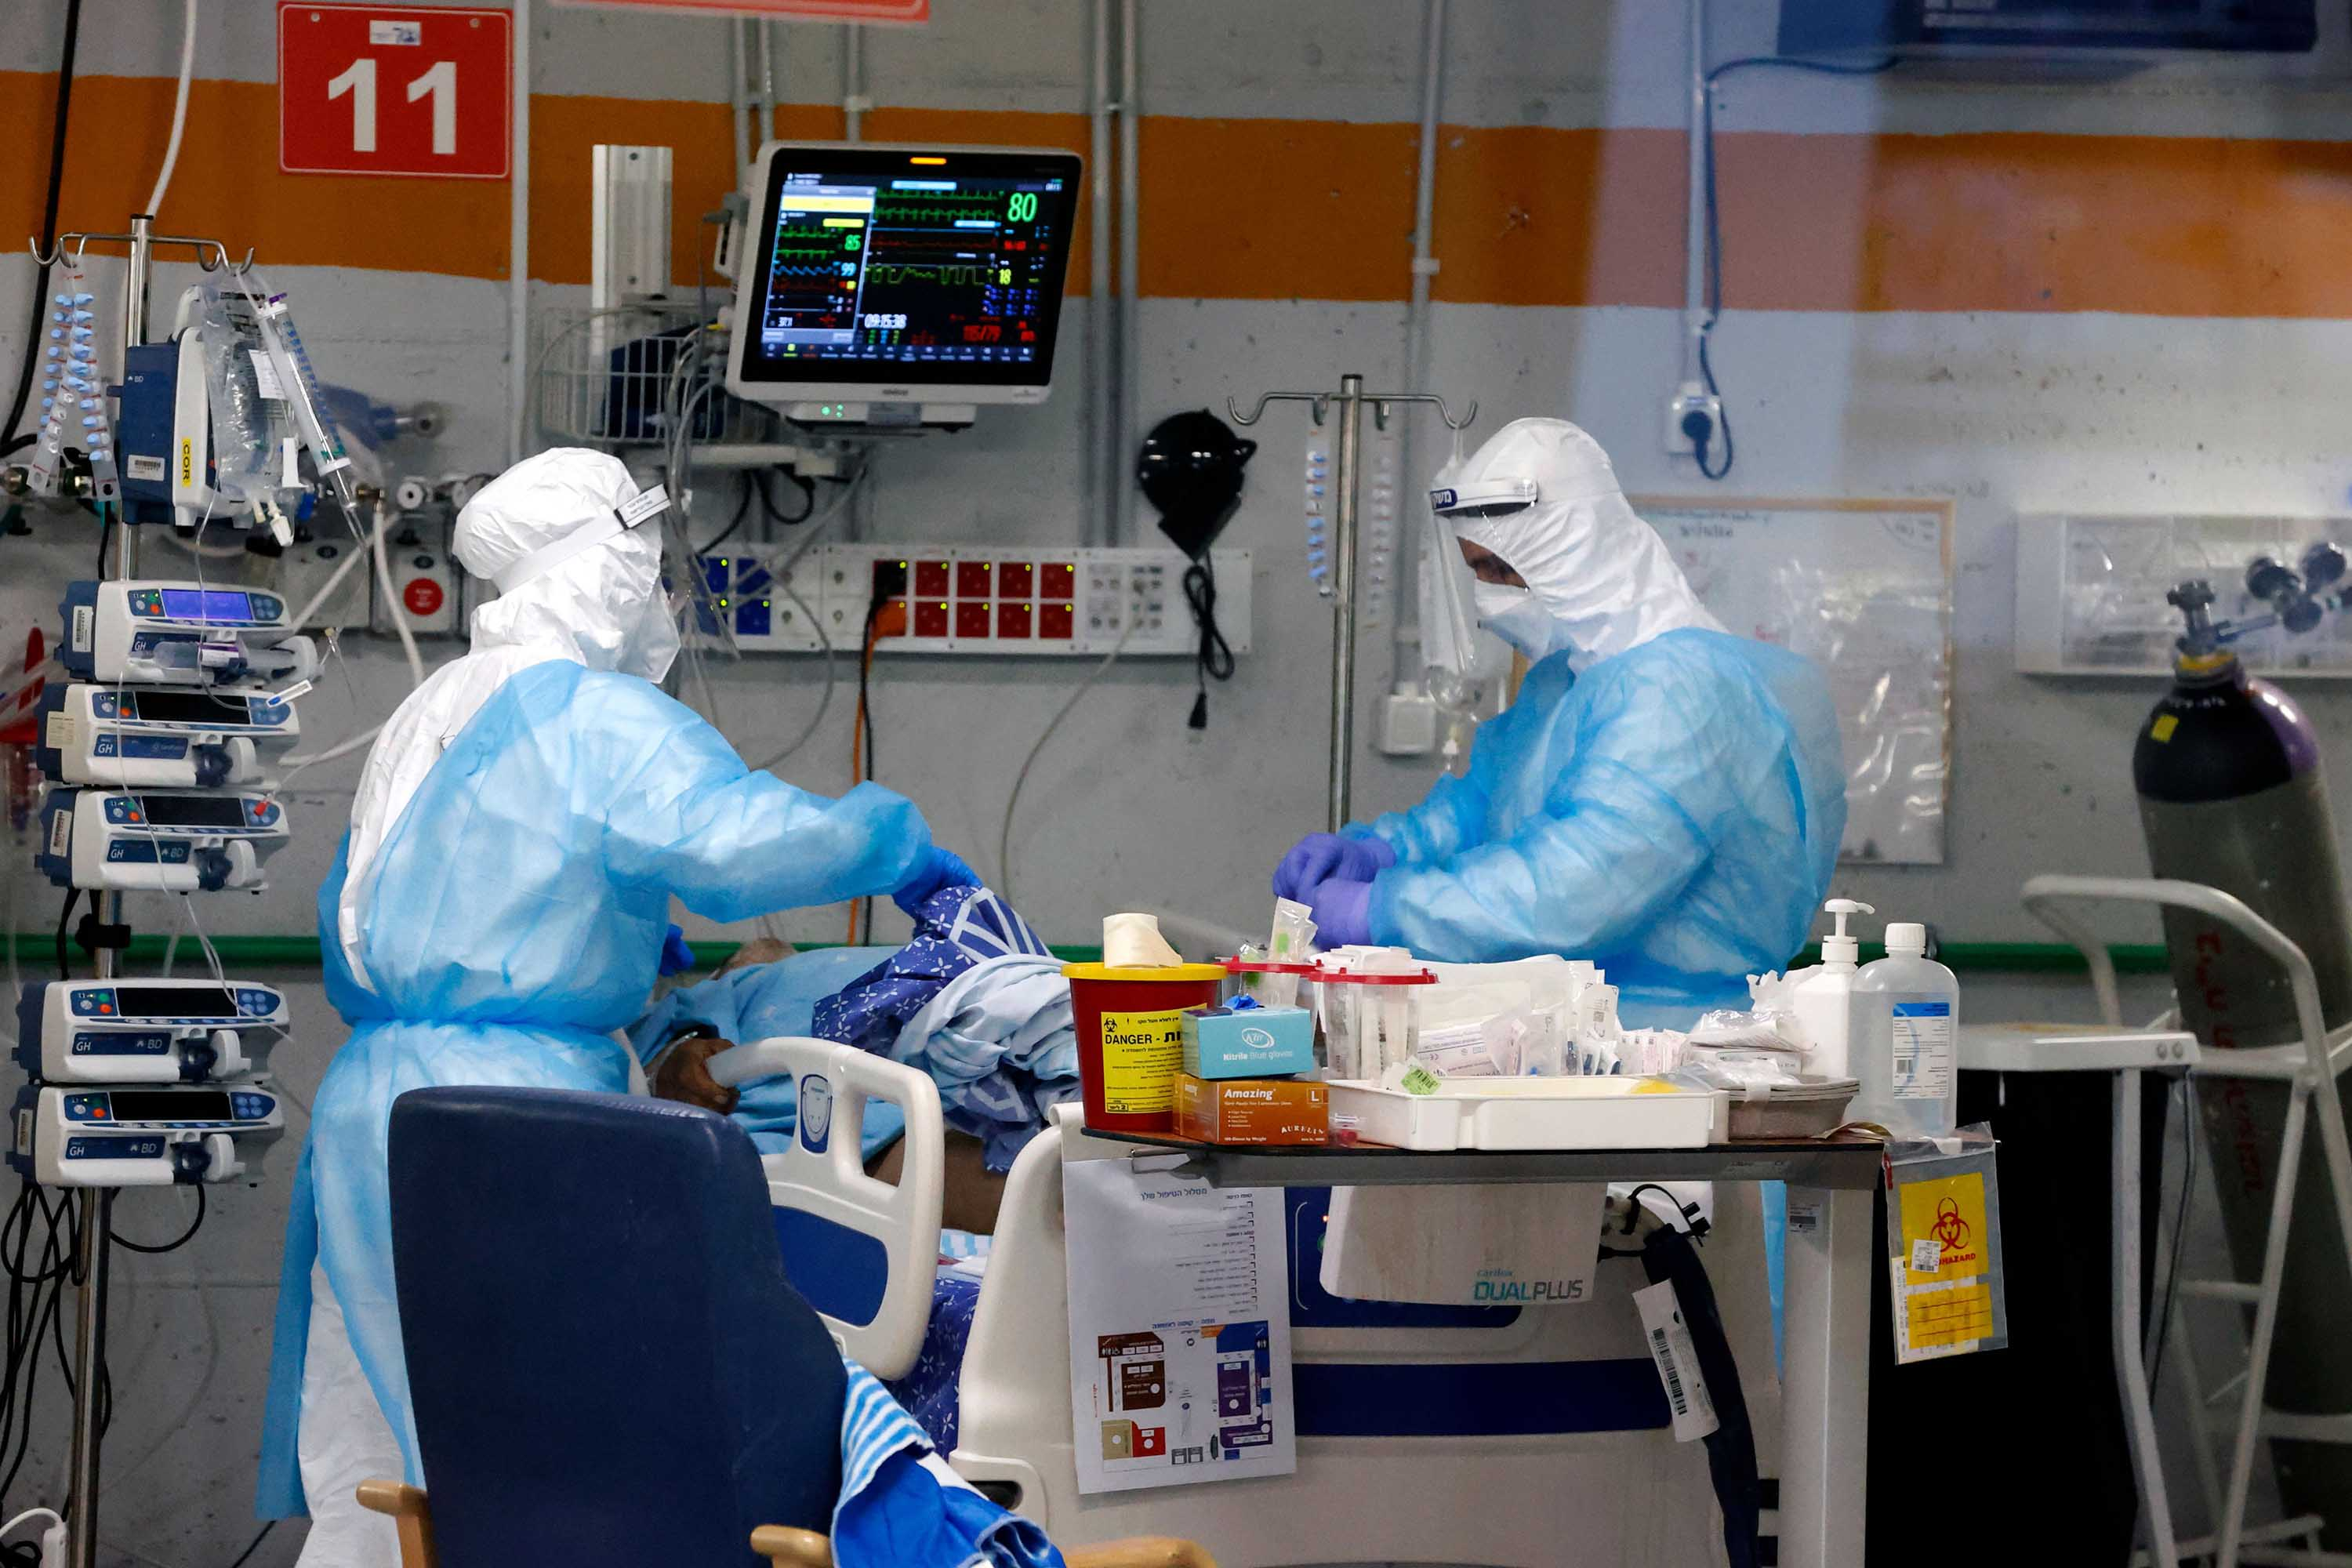 Medics care for a COVID-19 patient at the Sheba Medical Center's isolation ward, in Ramat Gan, Israel, on January 18.